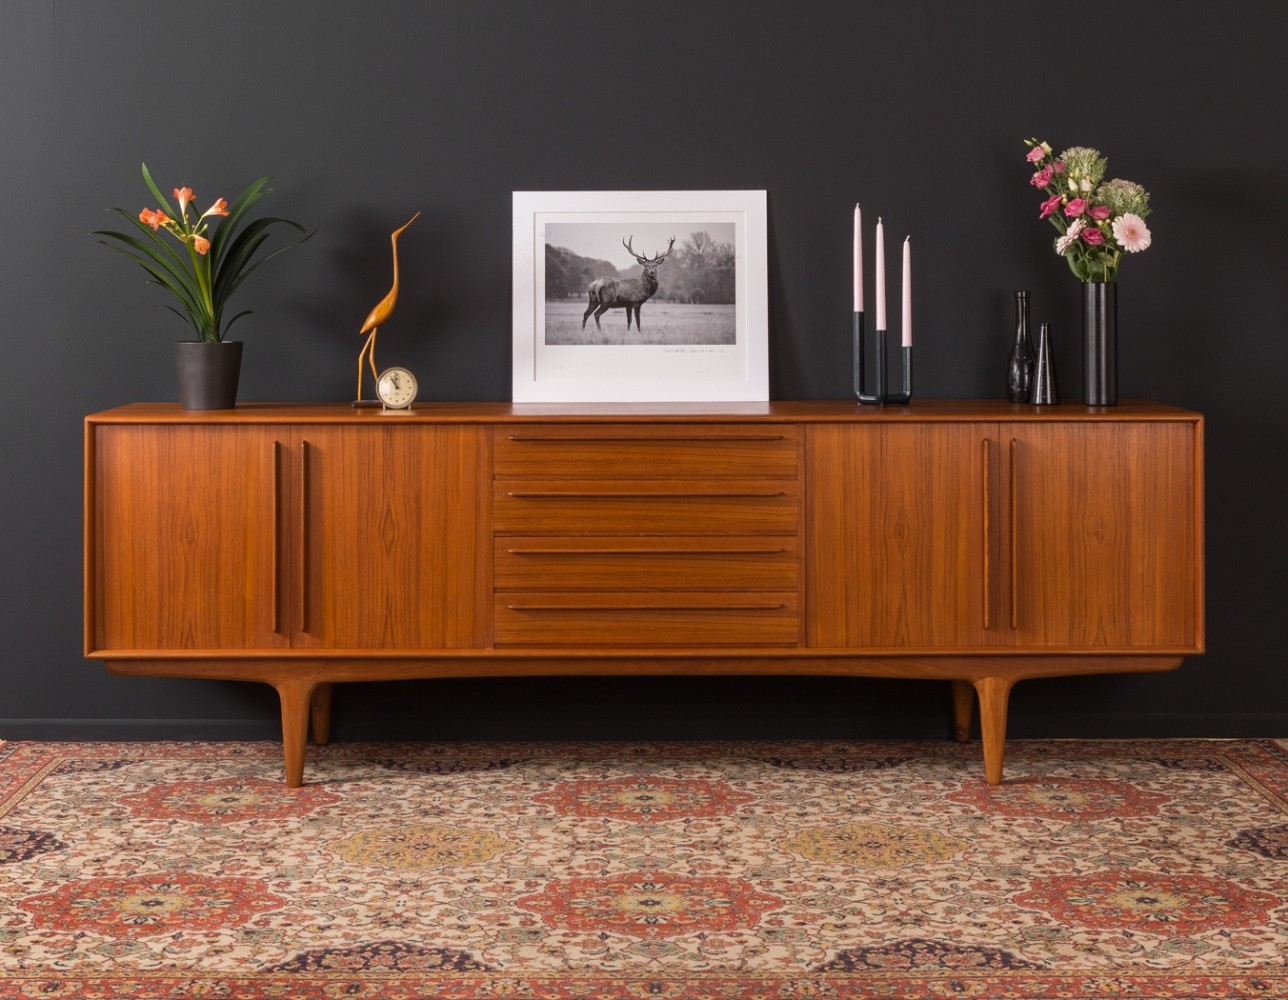 Danish sideboard from the 1960s